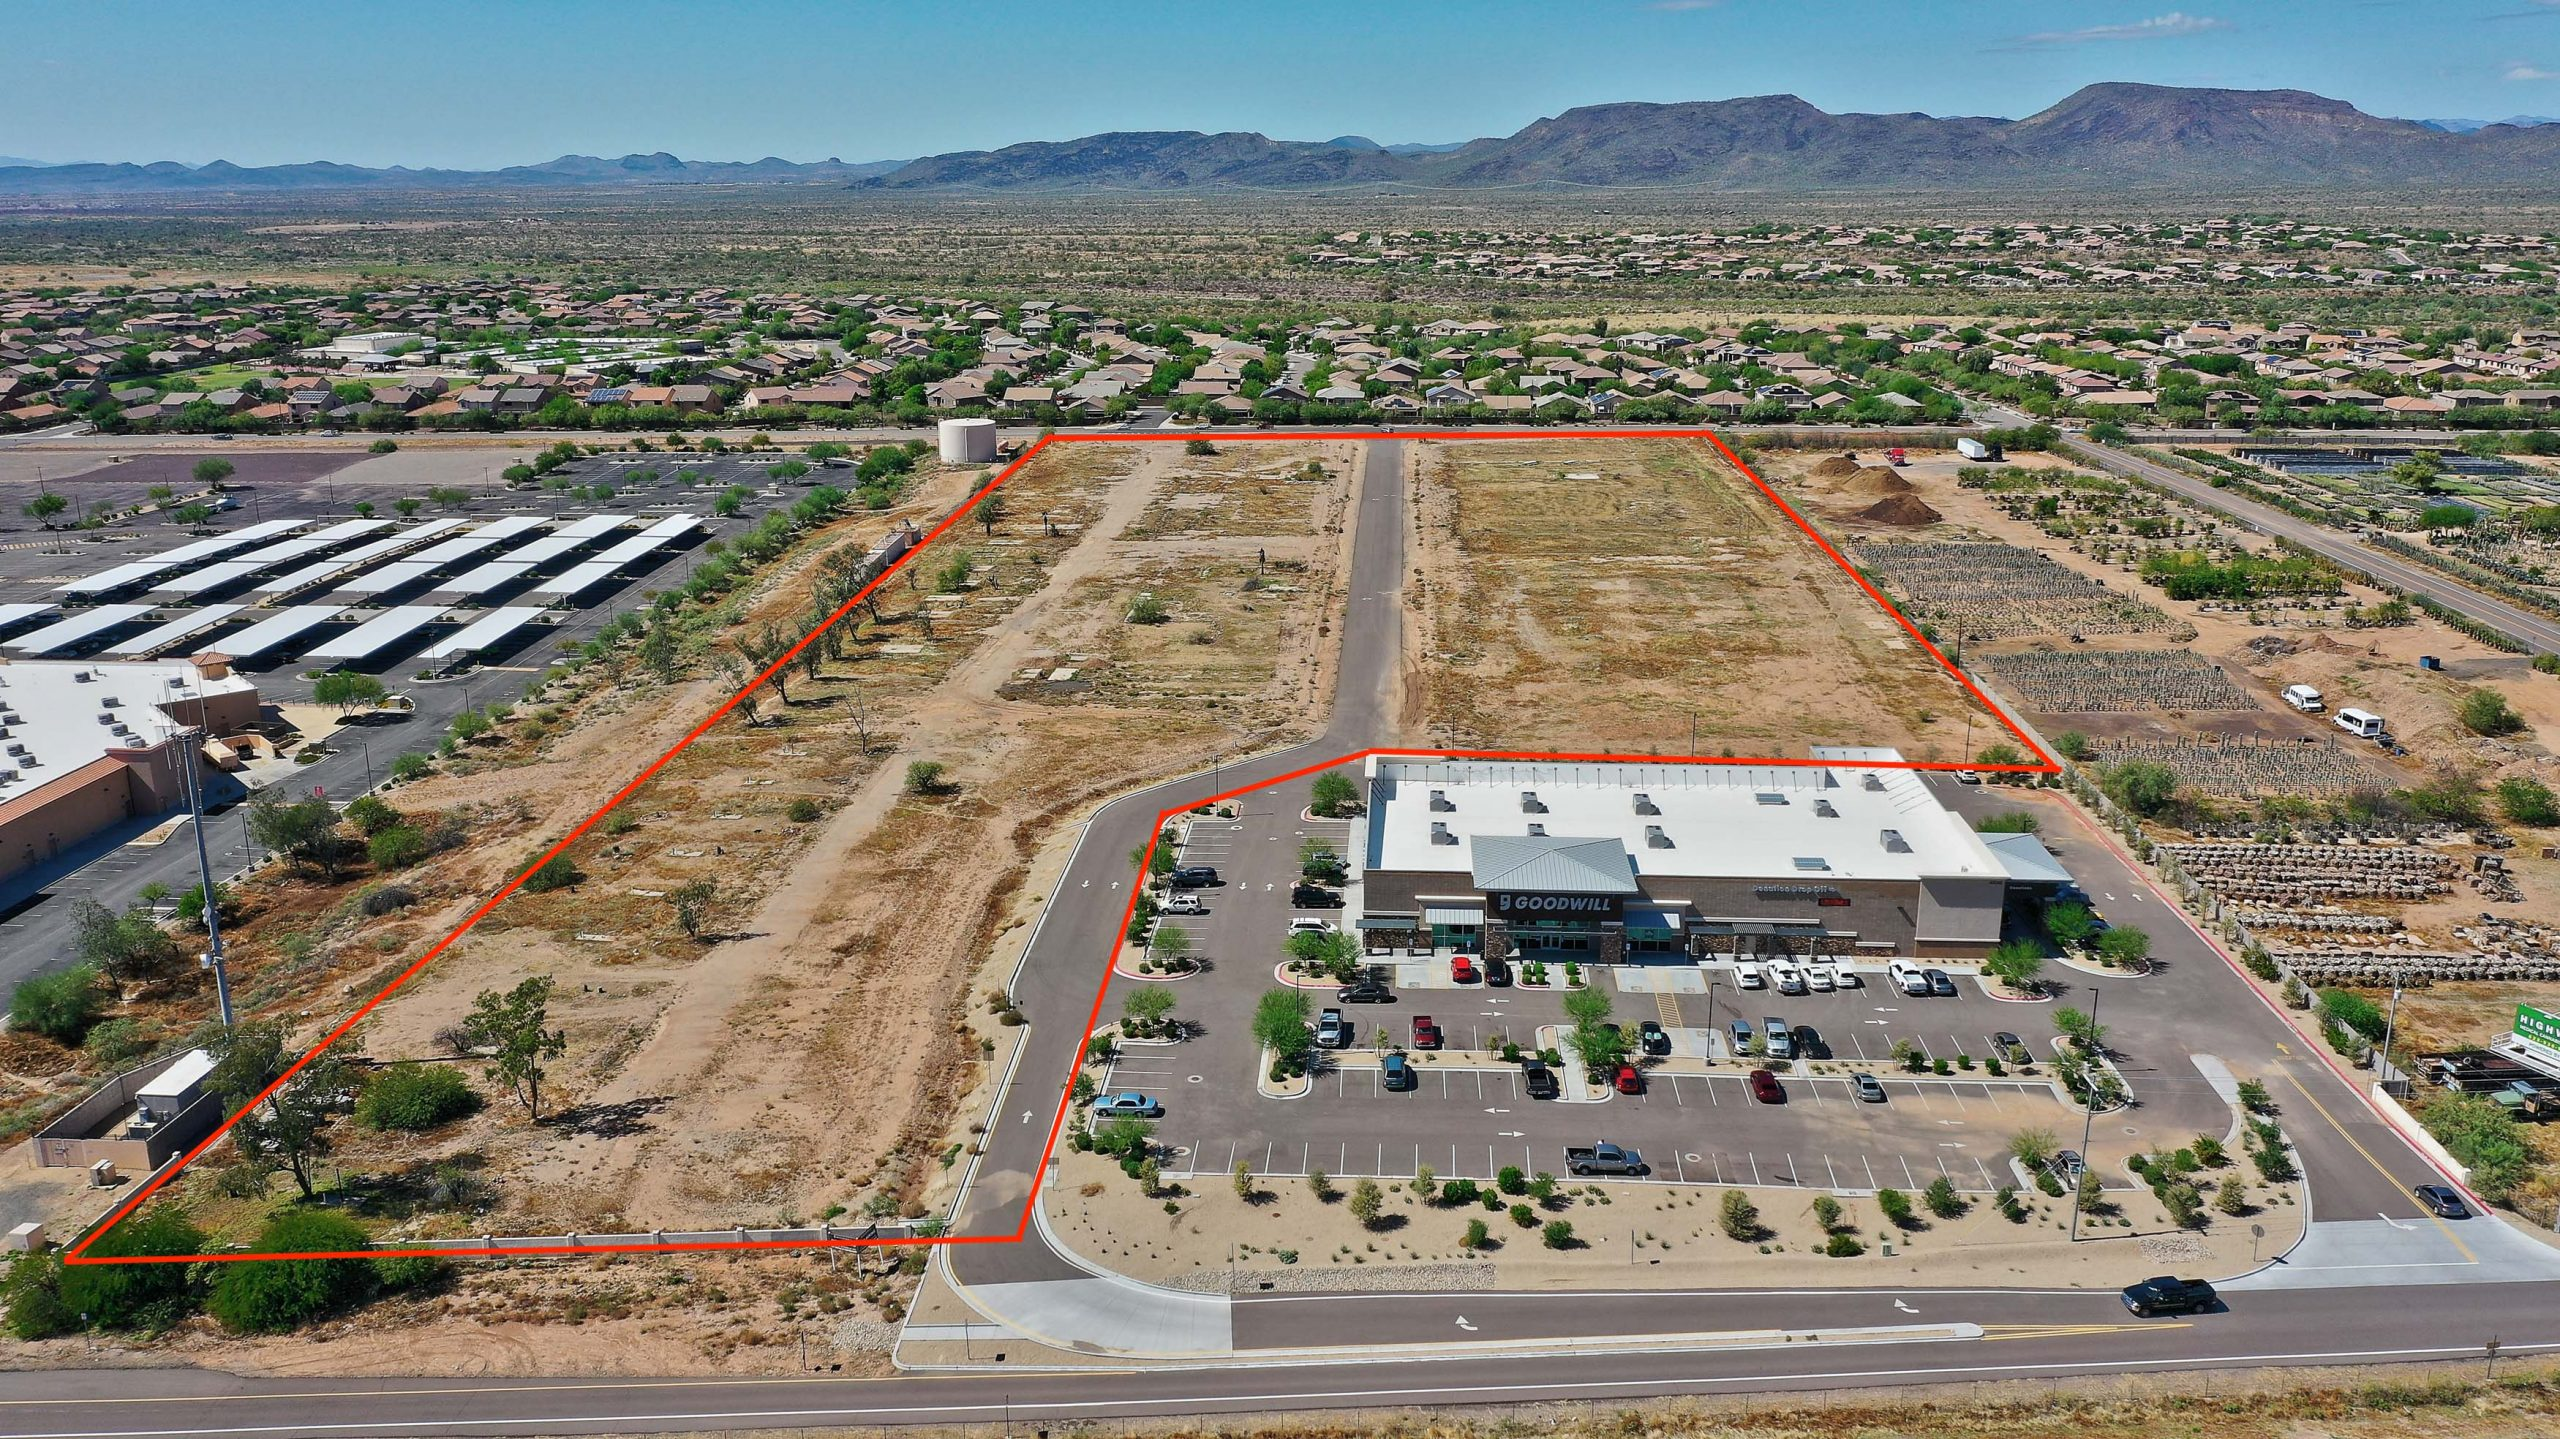 16 Acres In The City Of Phoenix, AZ | Commercial / Multi-Family Zoning | Freeway Frontage